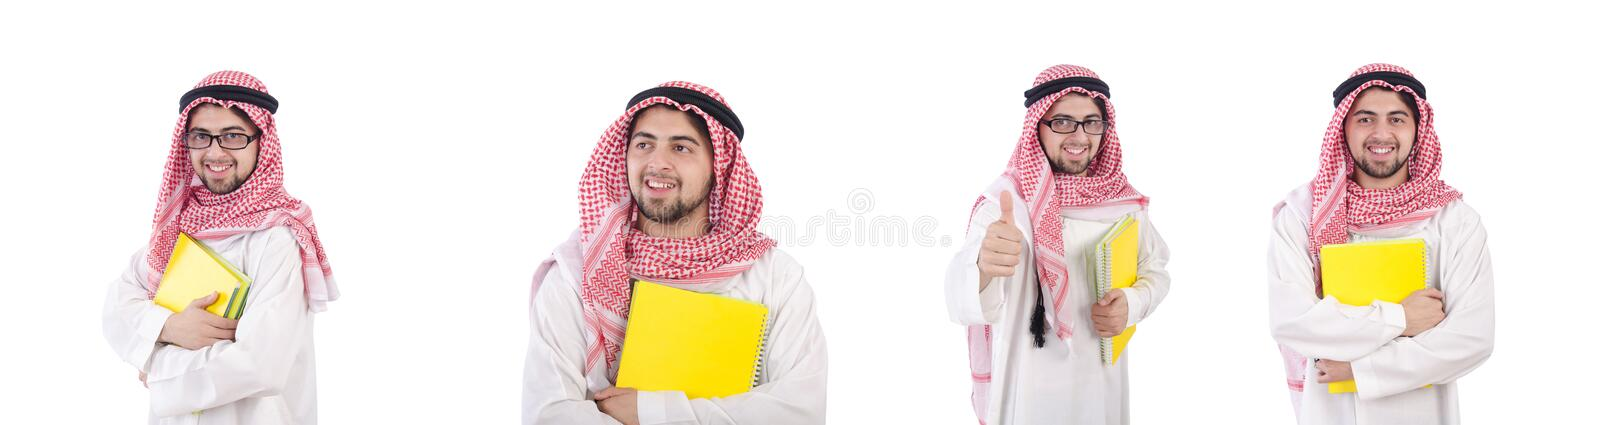 Youn arab student isolated on white. The youn arab student isolated on white stock photo